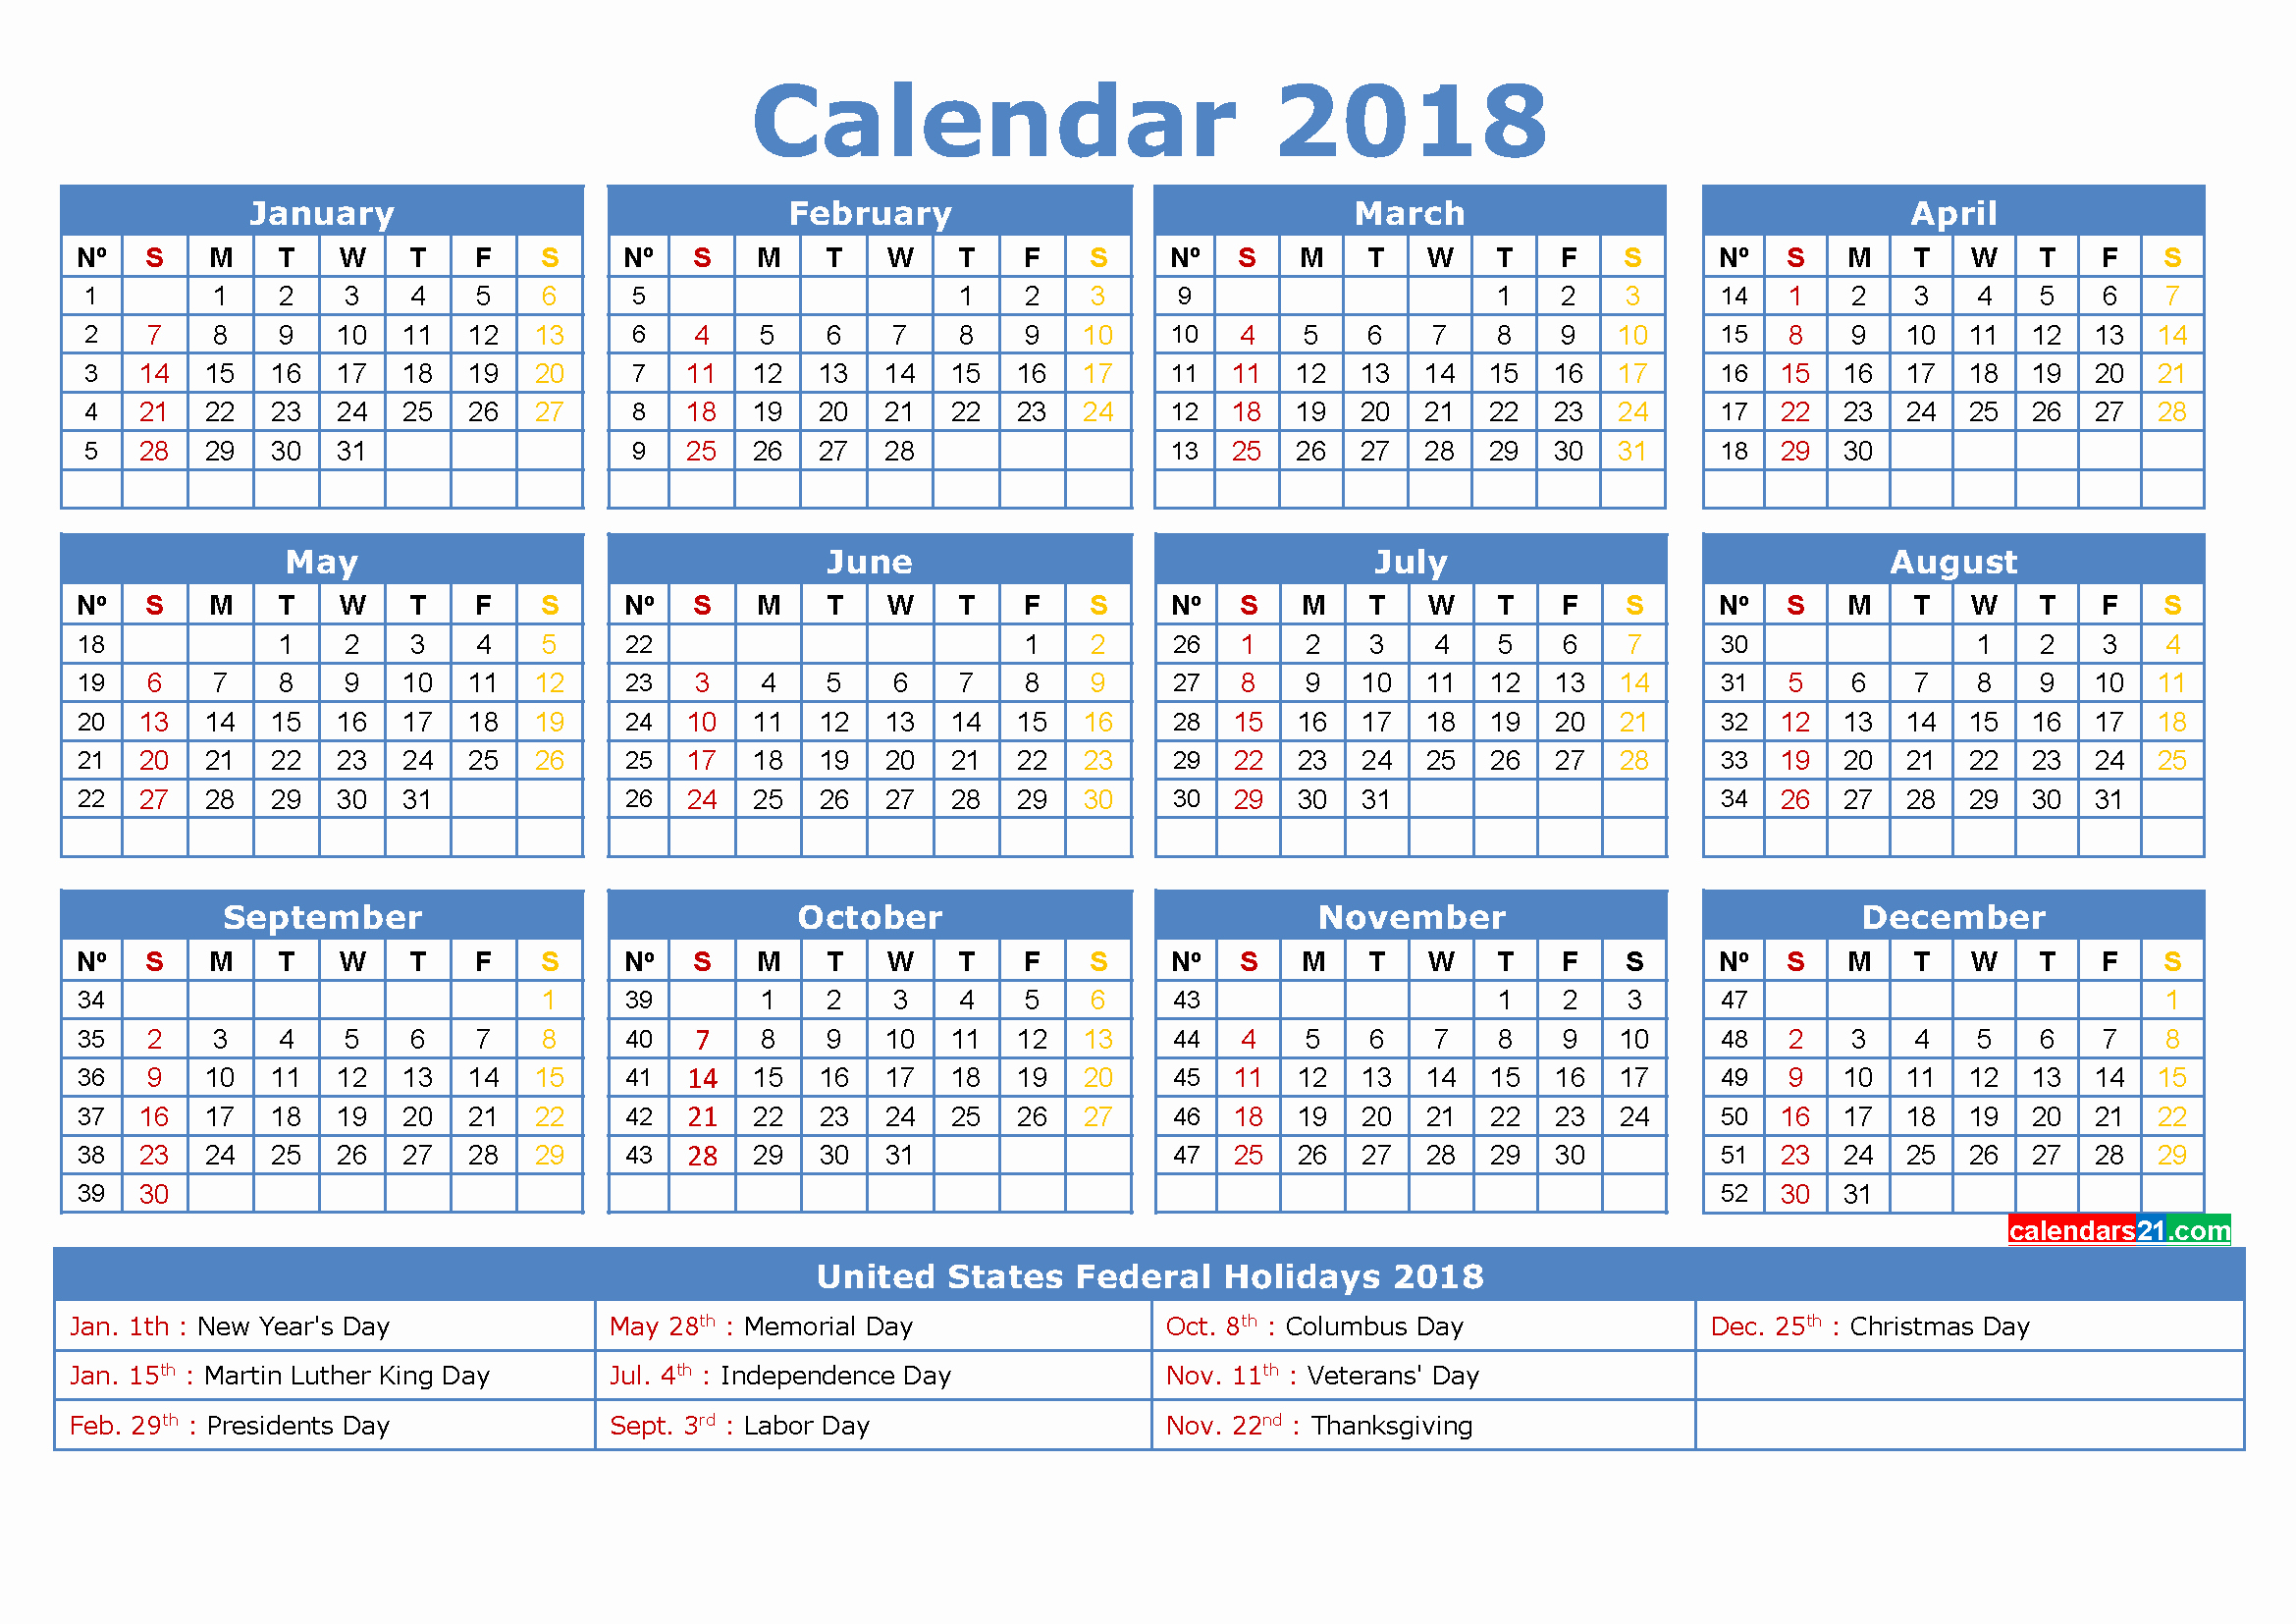 12 Month Calendar 2018 Printable Beautiful 12 Month Calendar 2018 Printable with Holidays In Us